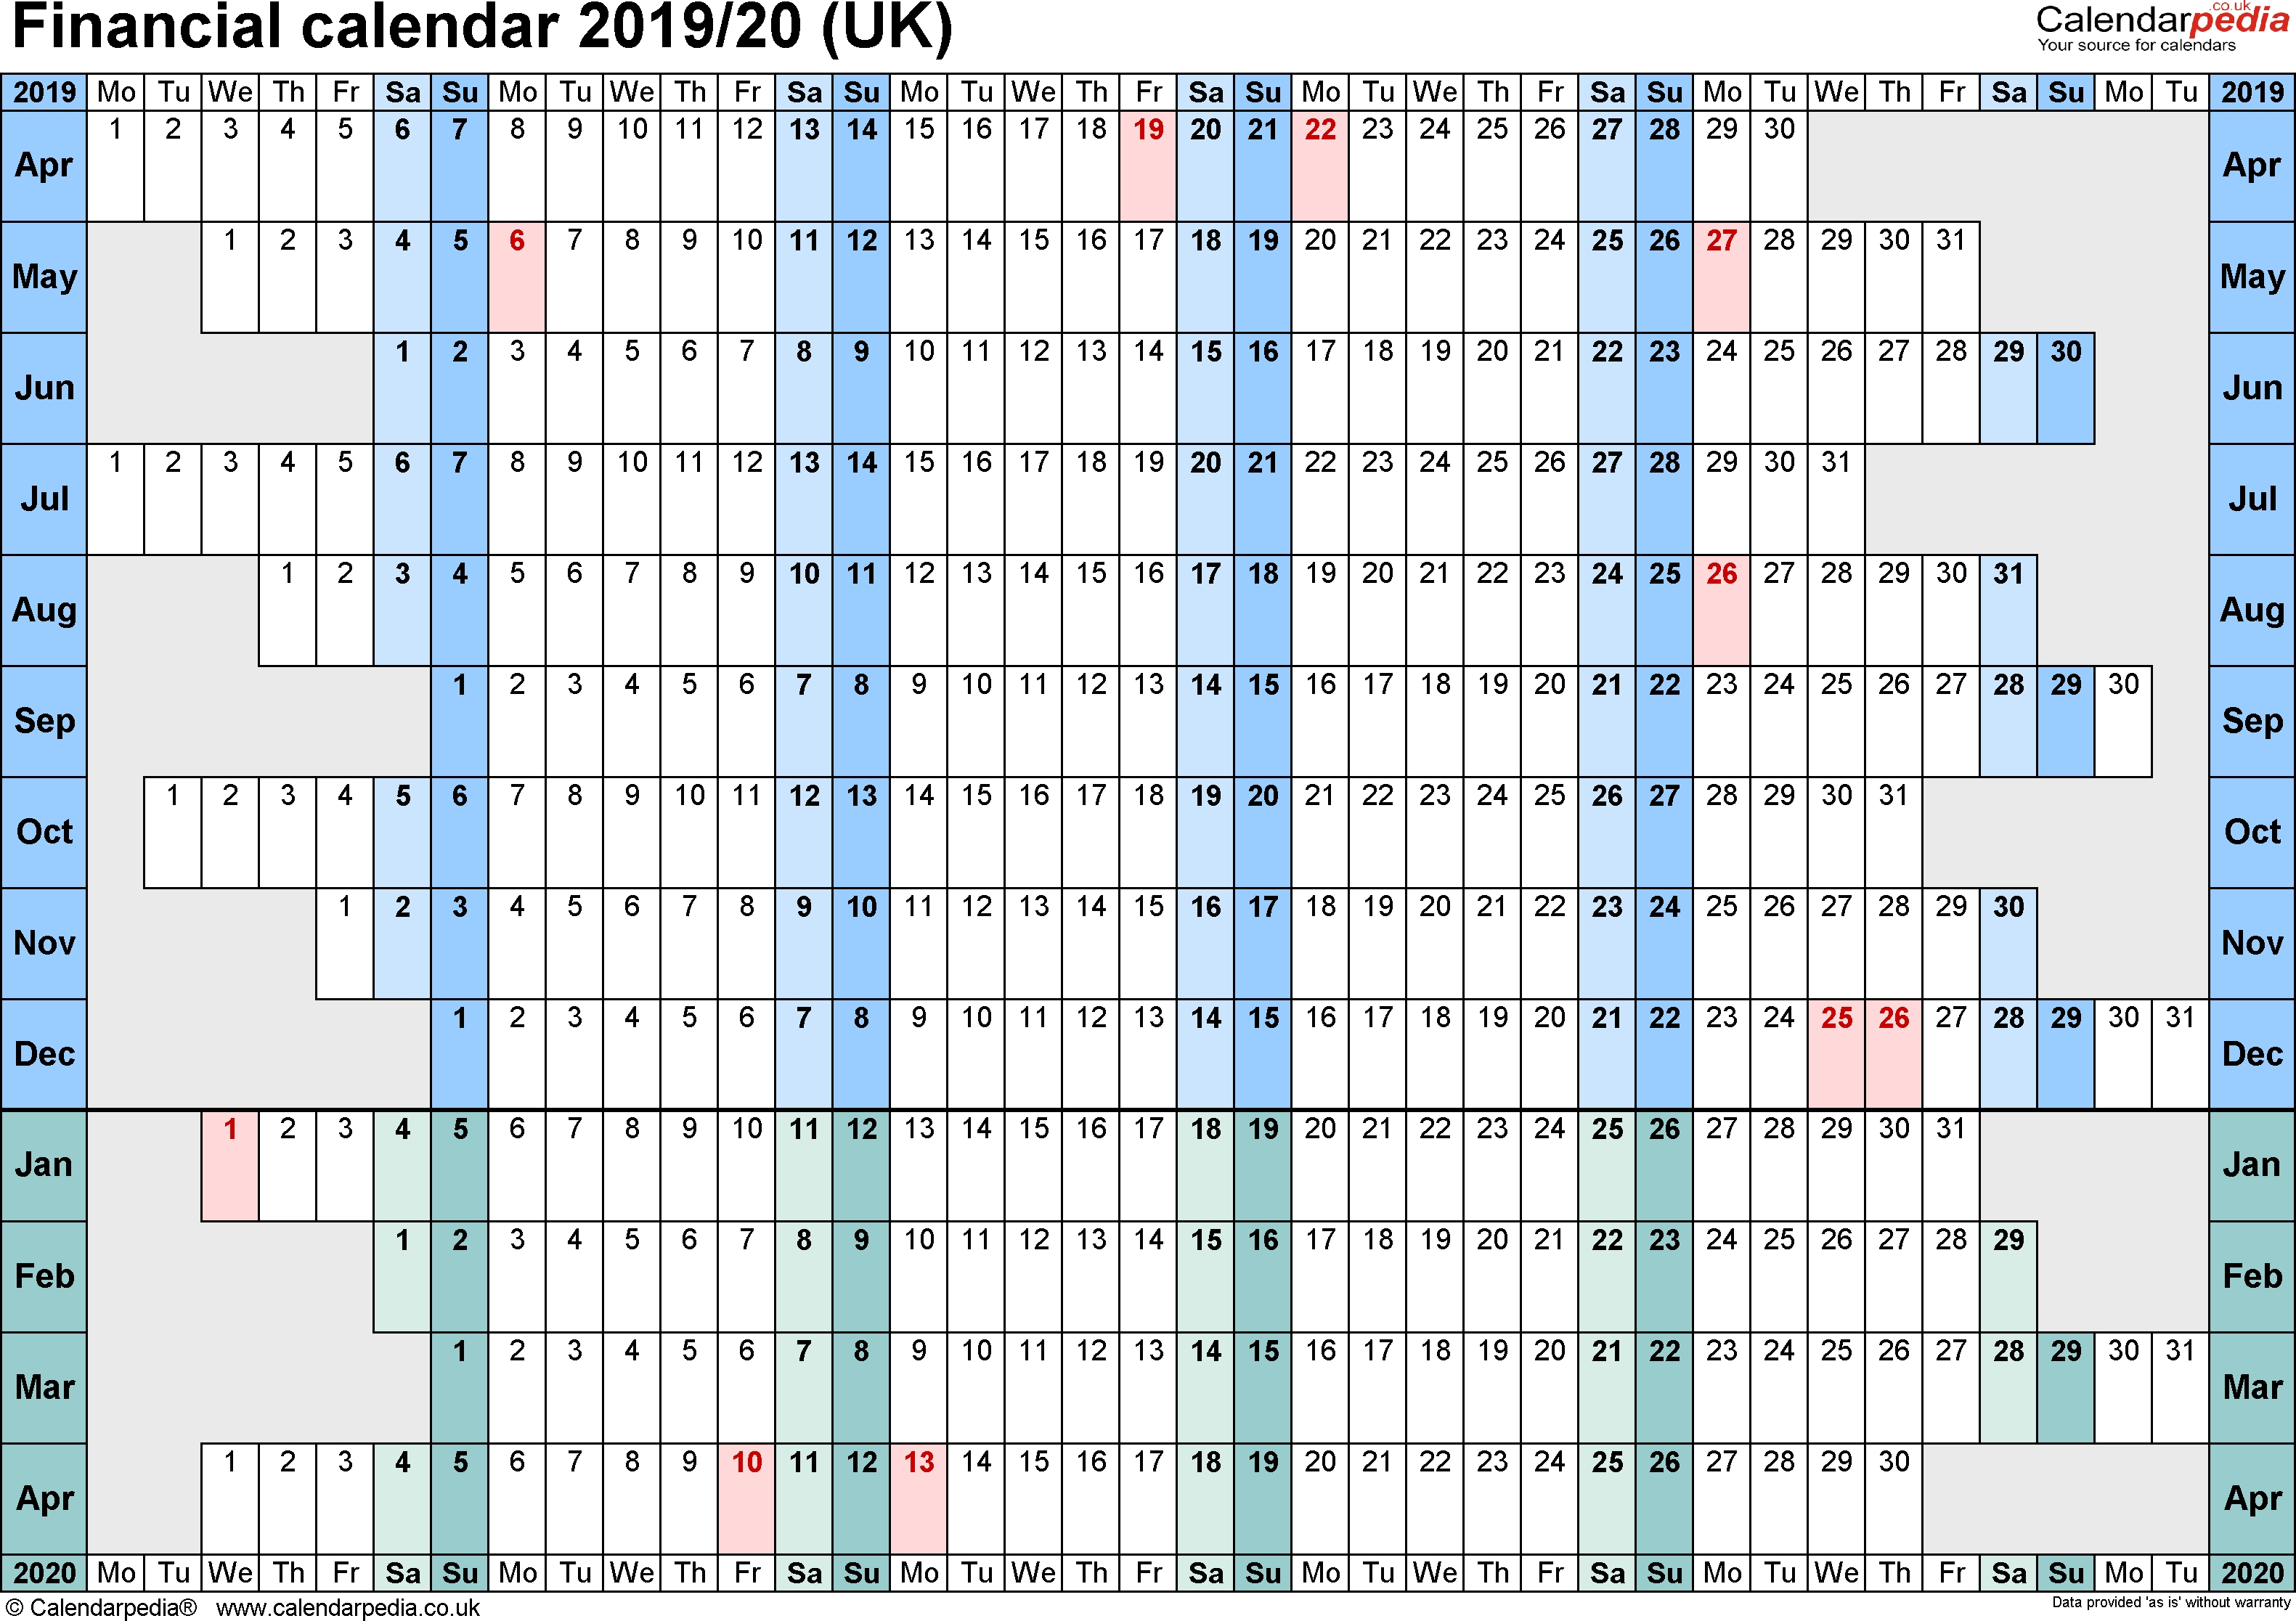 Financial Calendars 2019/20 (Uk) In Pdf Format with Hmrc Tax Calendar 2019 2020